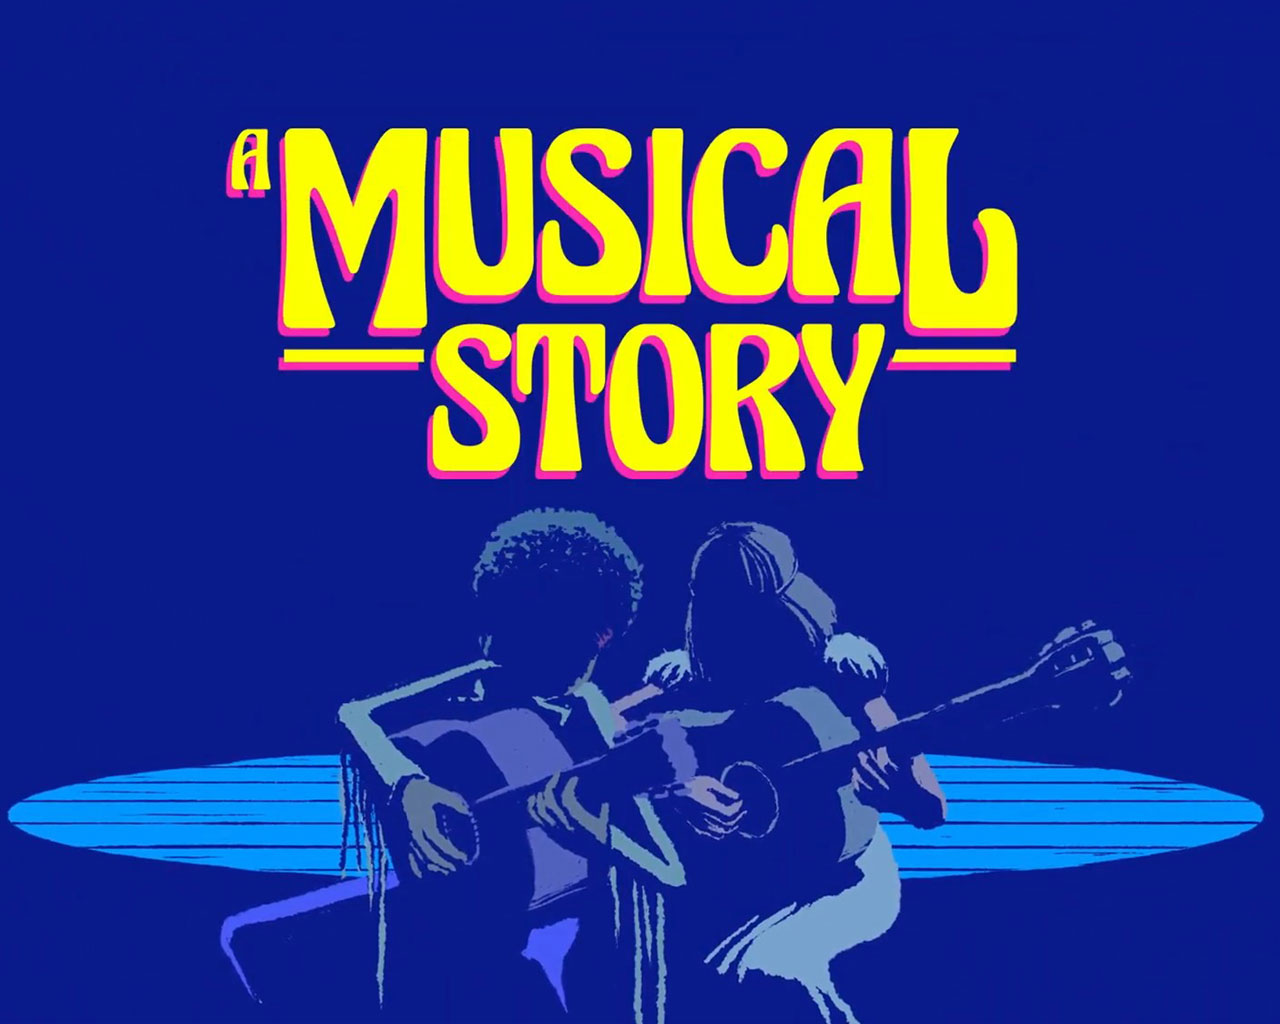 Free A Musical Story Wallpaper in 1280x1024